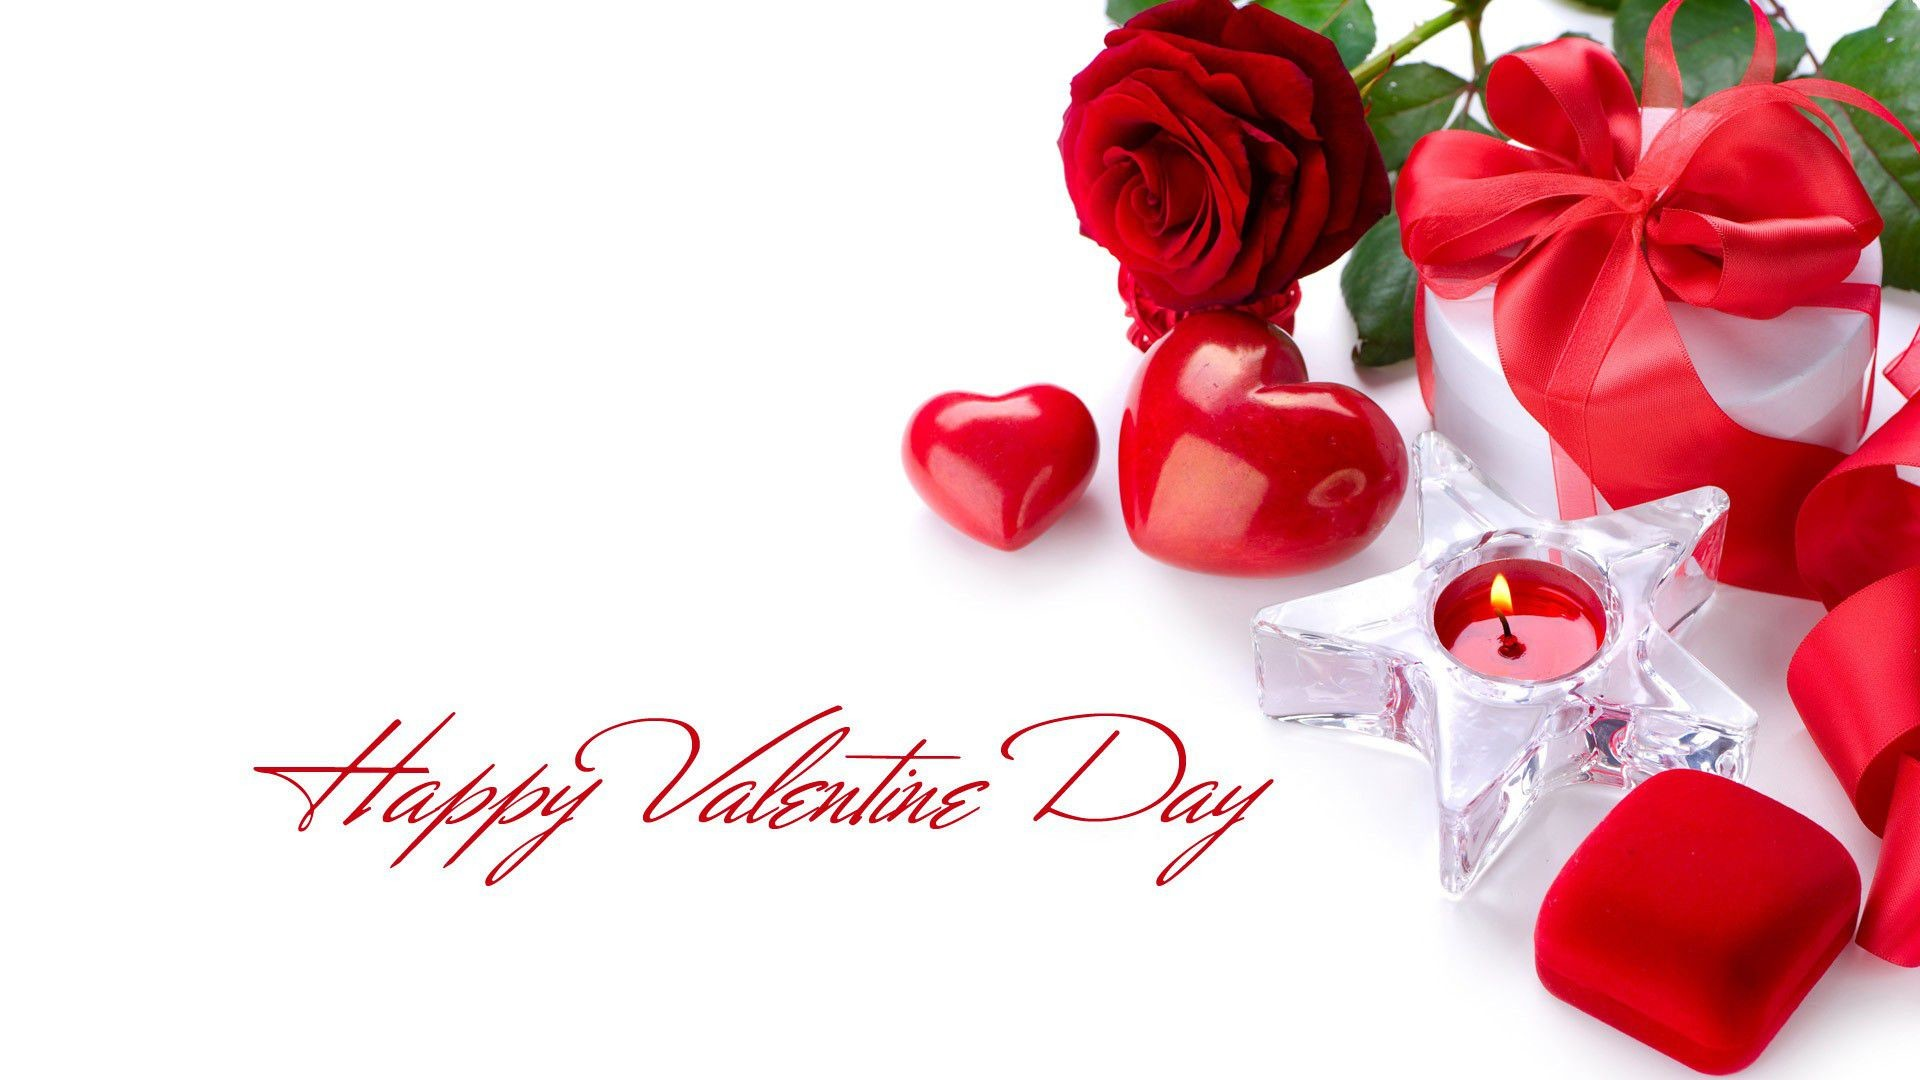 happy valentines day red rose with candle hd wallpaper